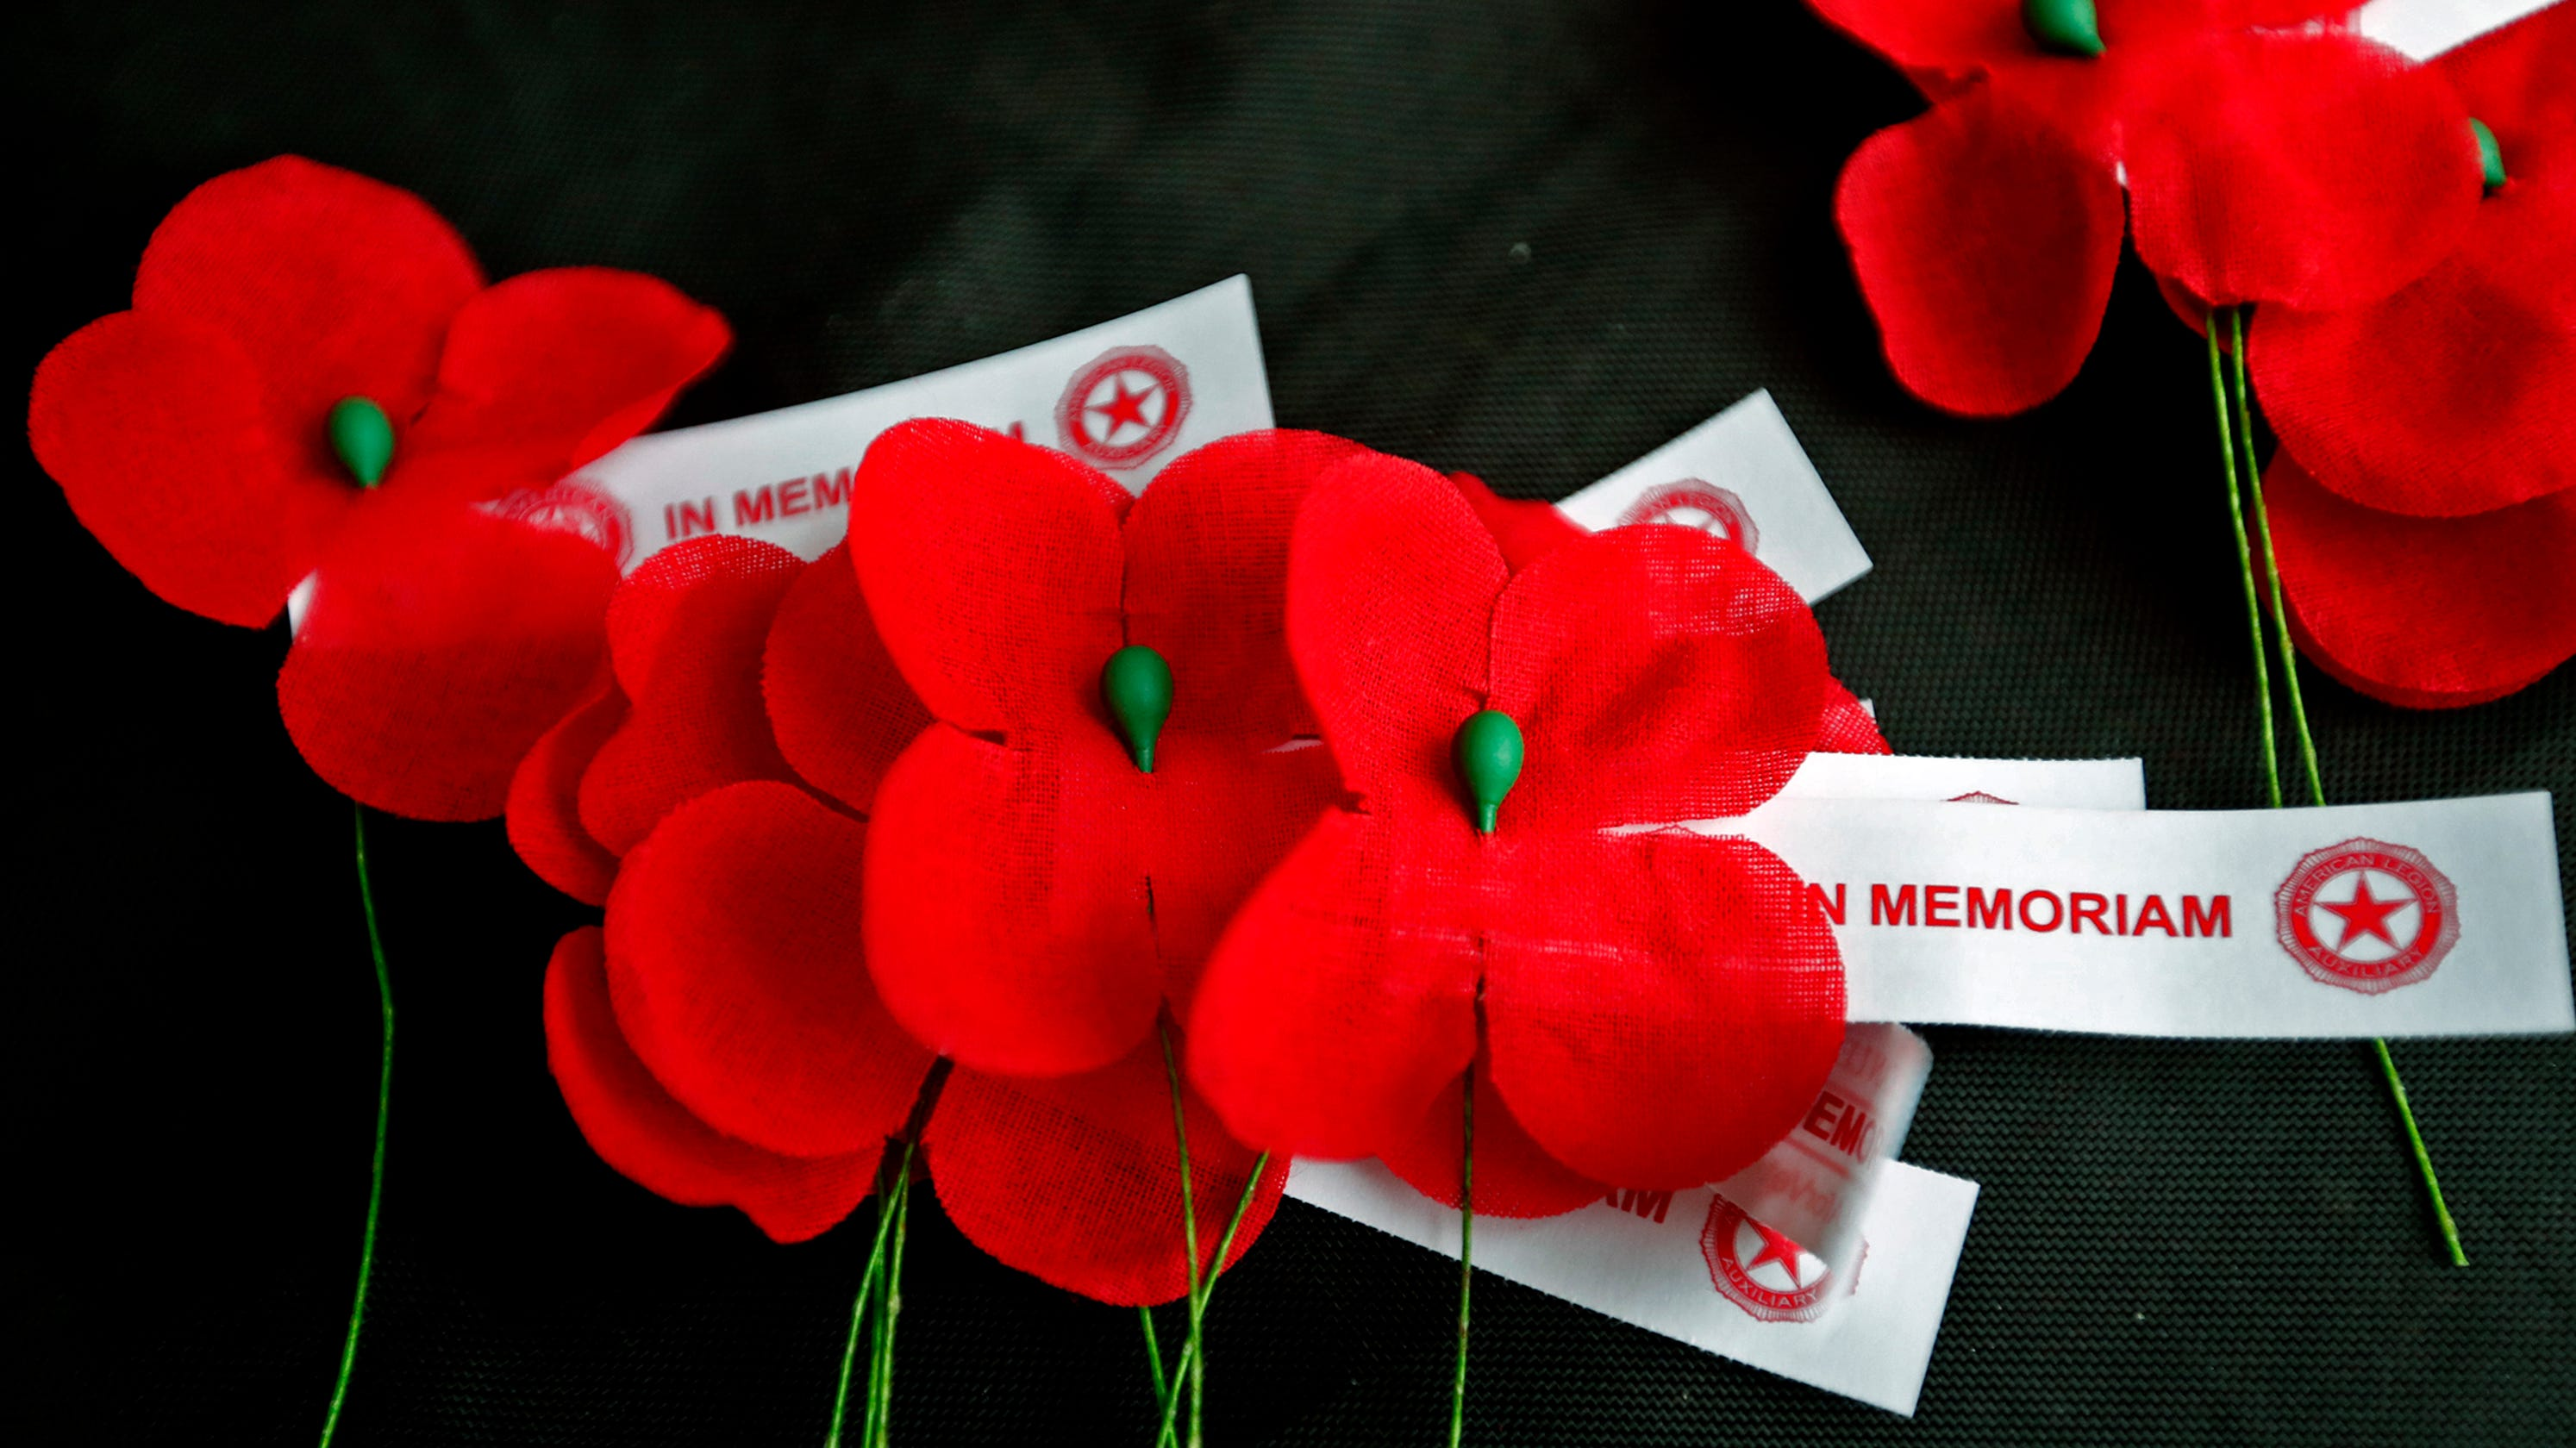 Remembering Veterans With Red Poppies